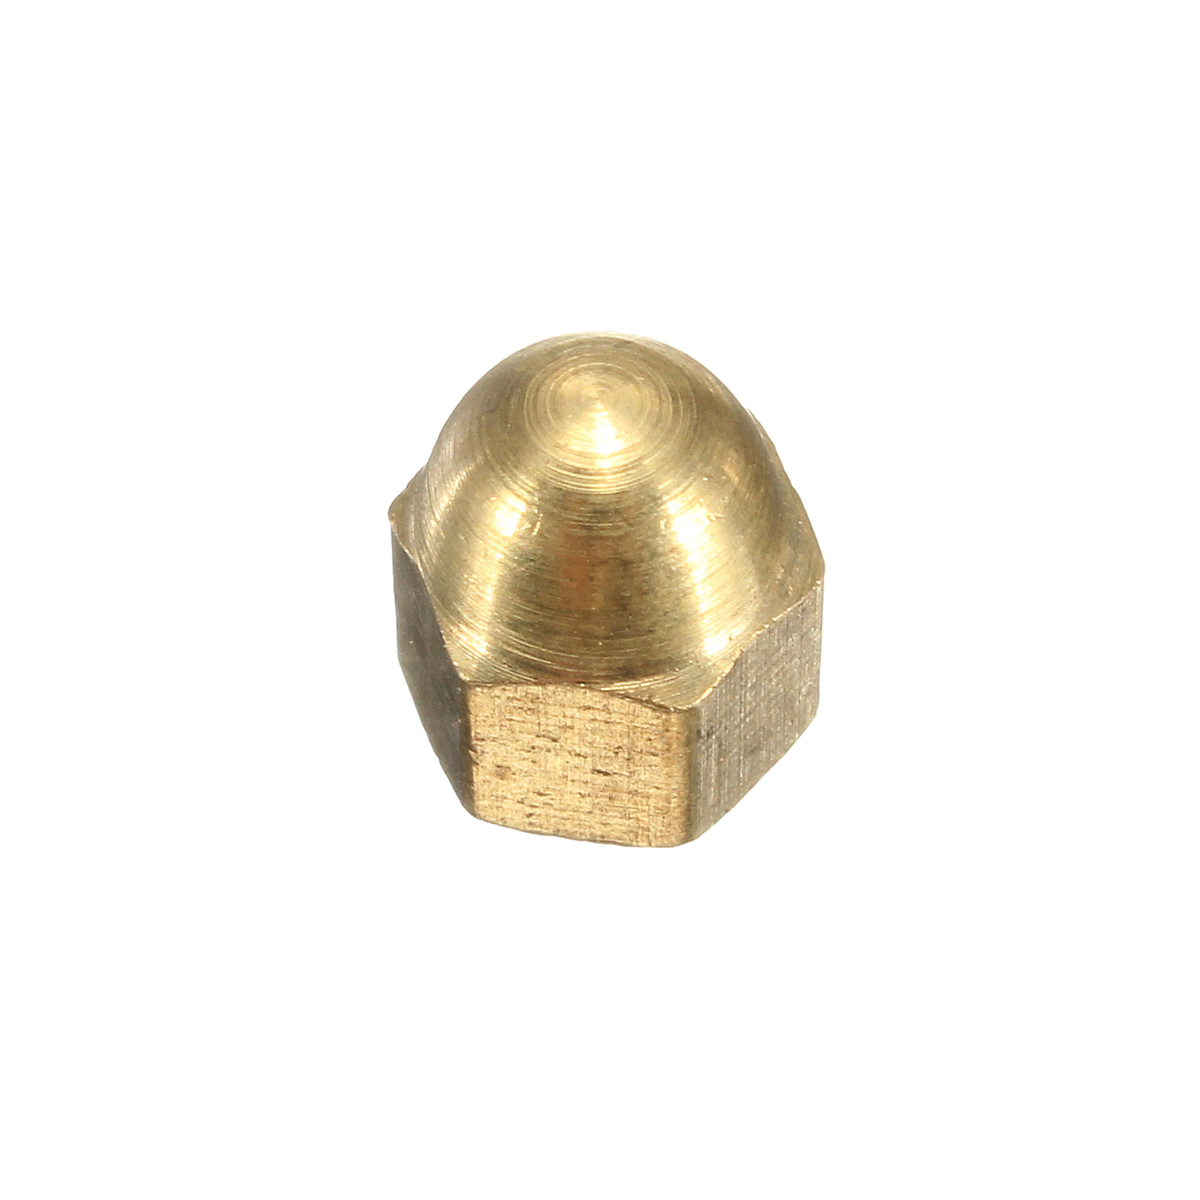 Solid Gold Brass Dome Head Cap Nuts Bolts Screws Din 1587 M4 M5 M8 M10